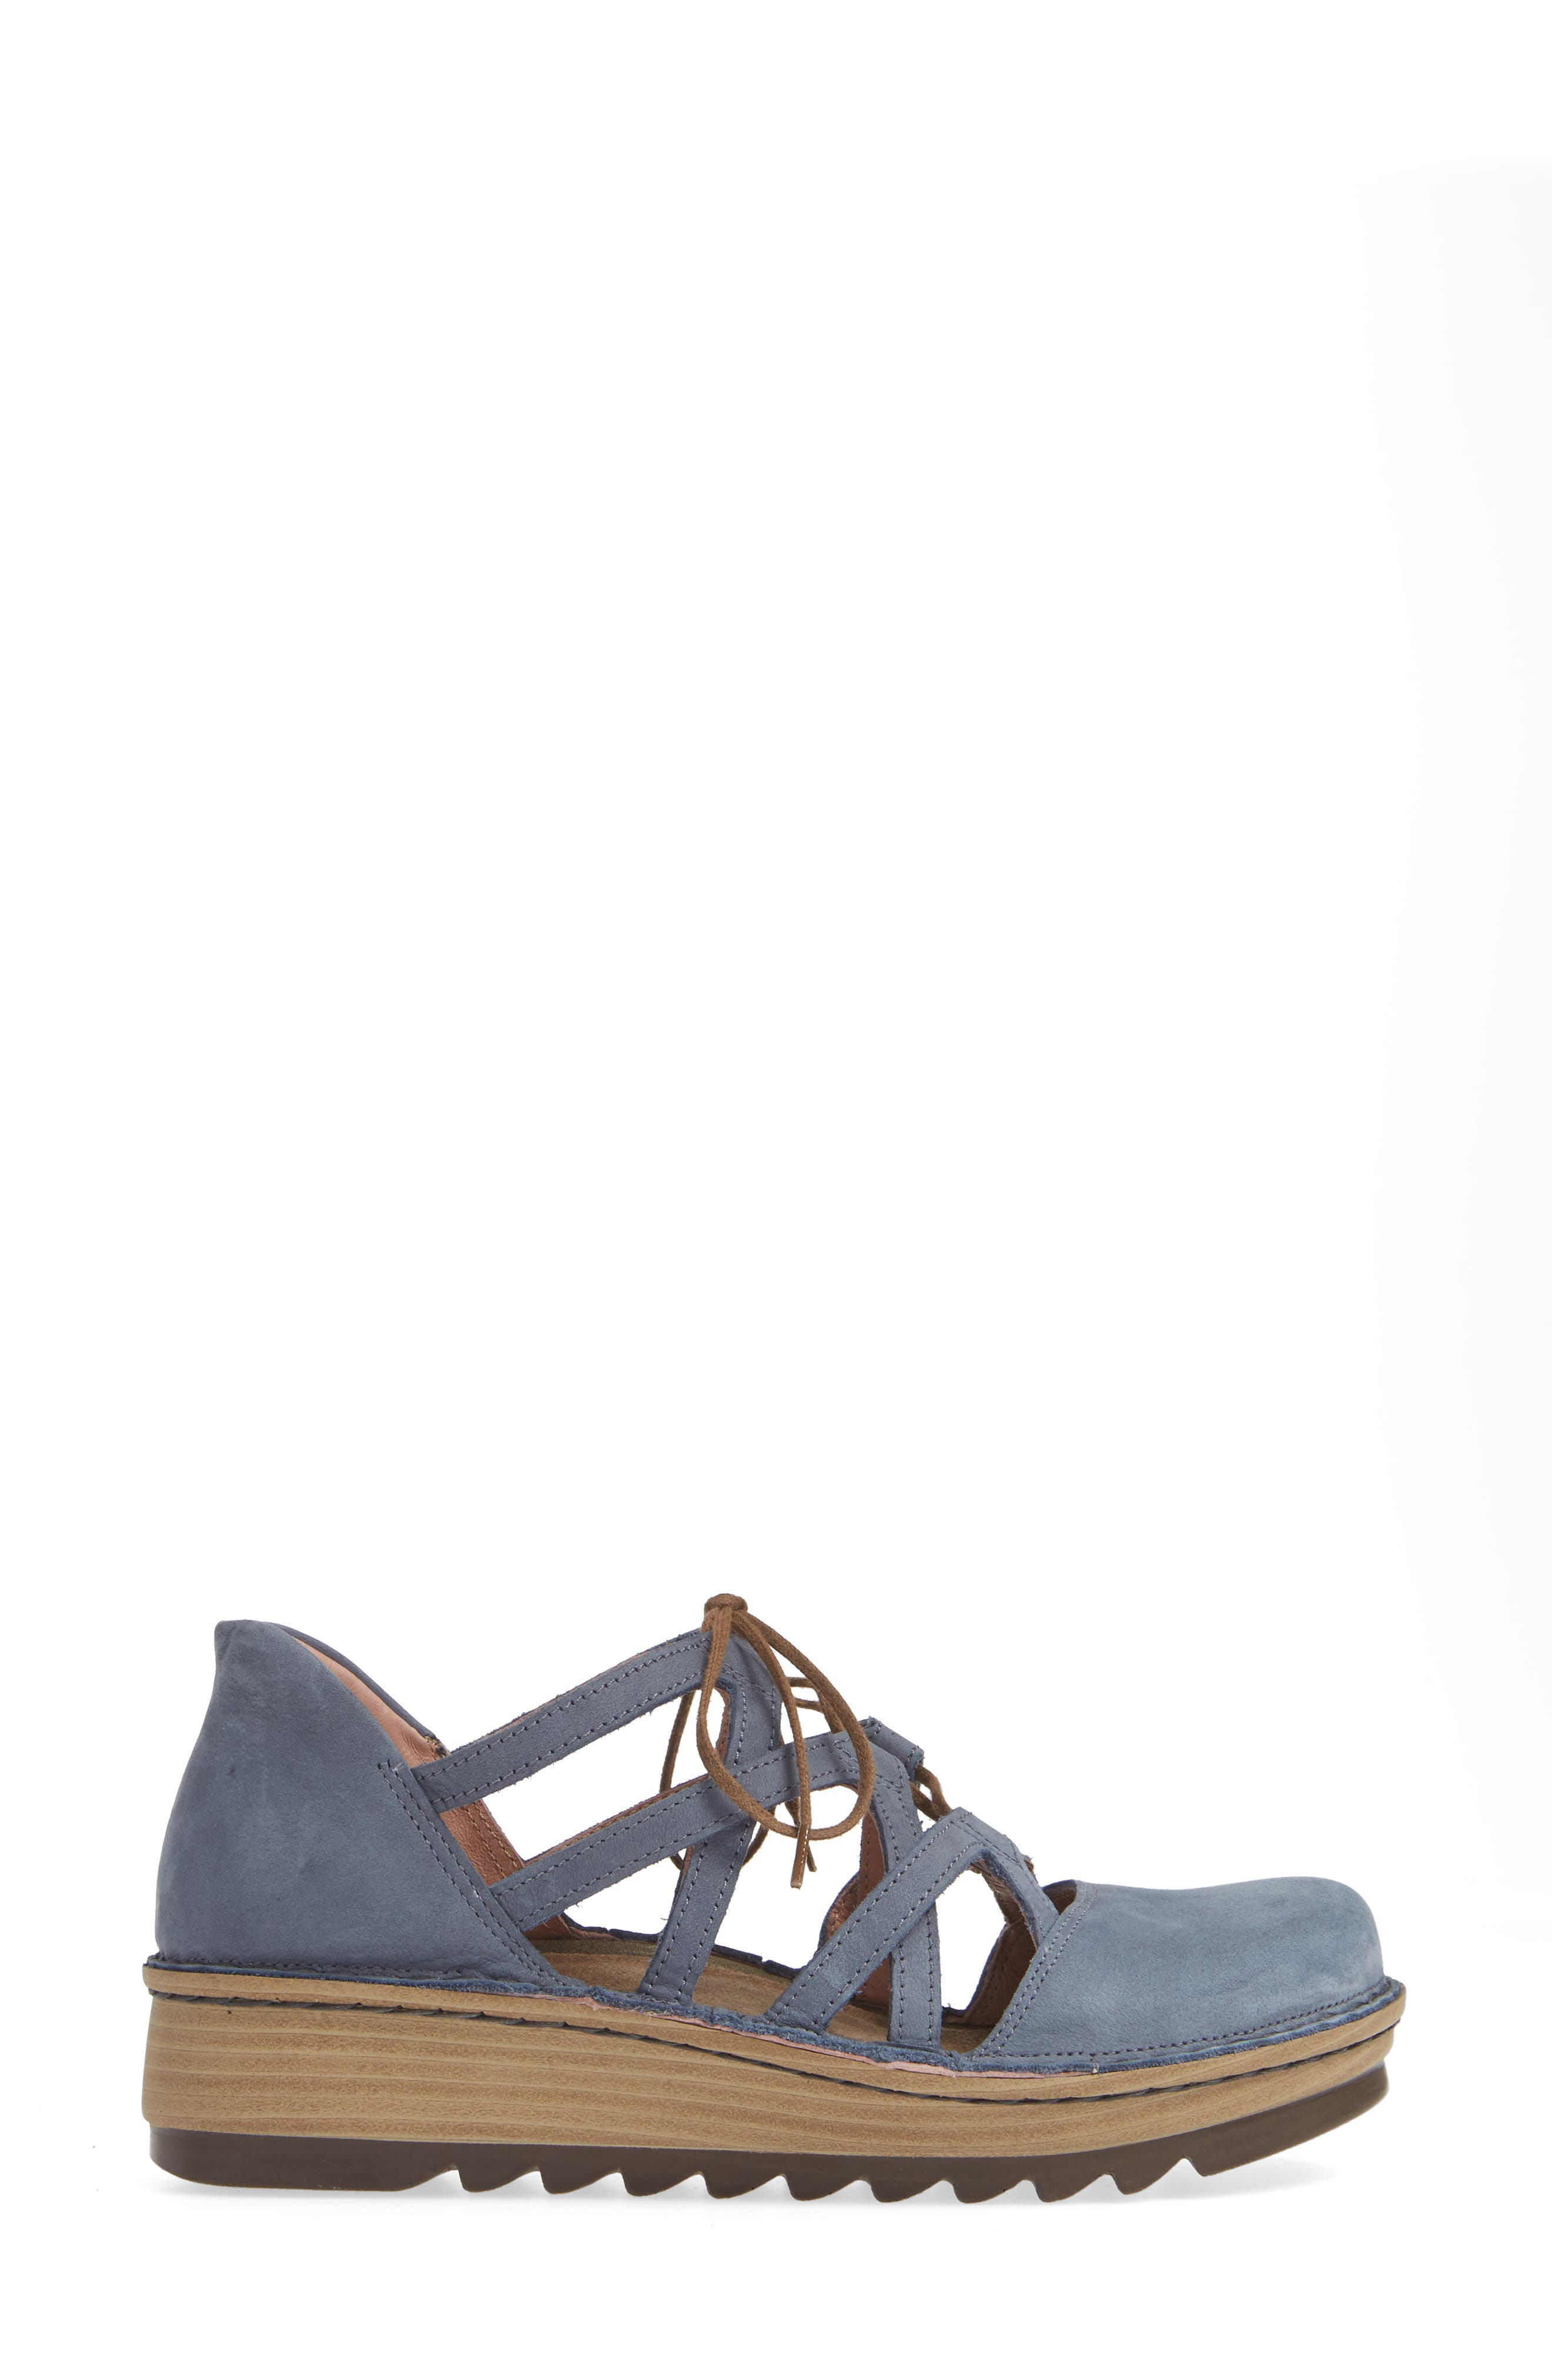 NAOT,                             Calathea Ghillie Laced Wedge,                             Alternate thumbnail 3, color,                             FEATHERY BLUE NUBUCK